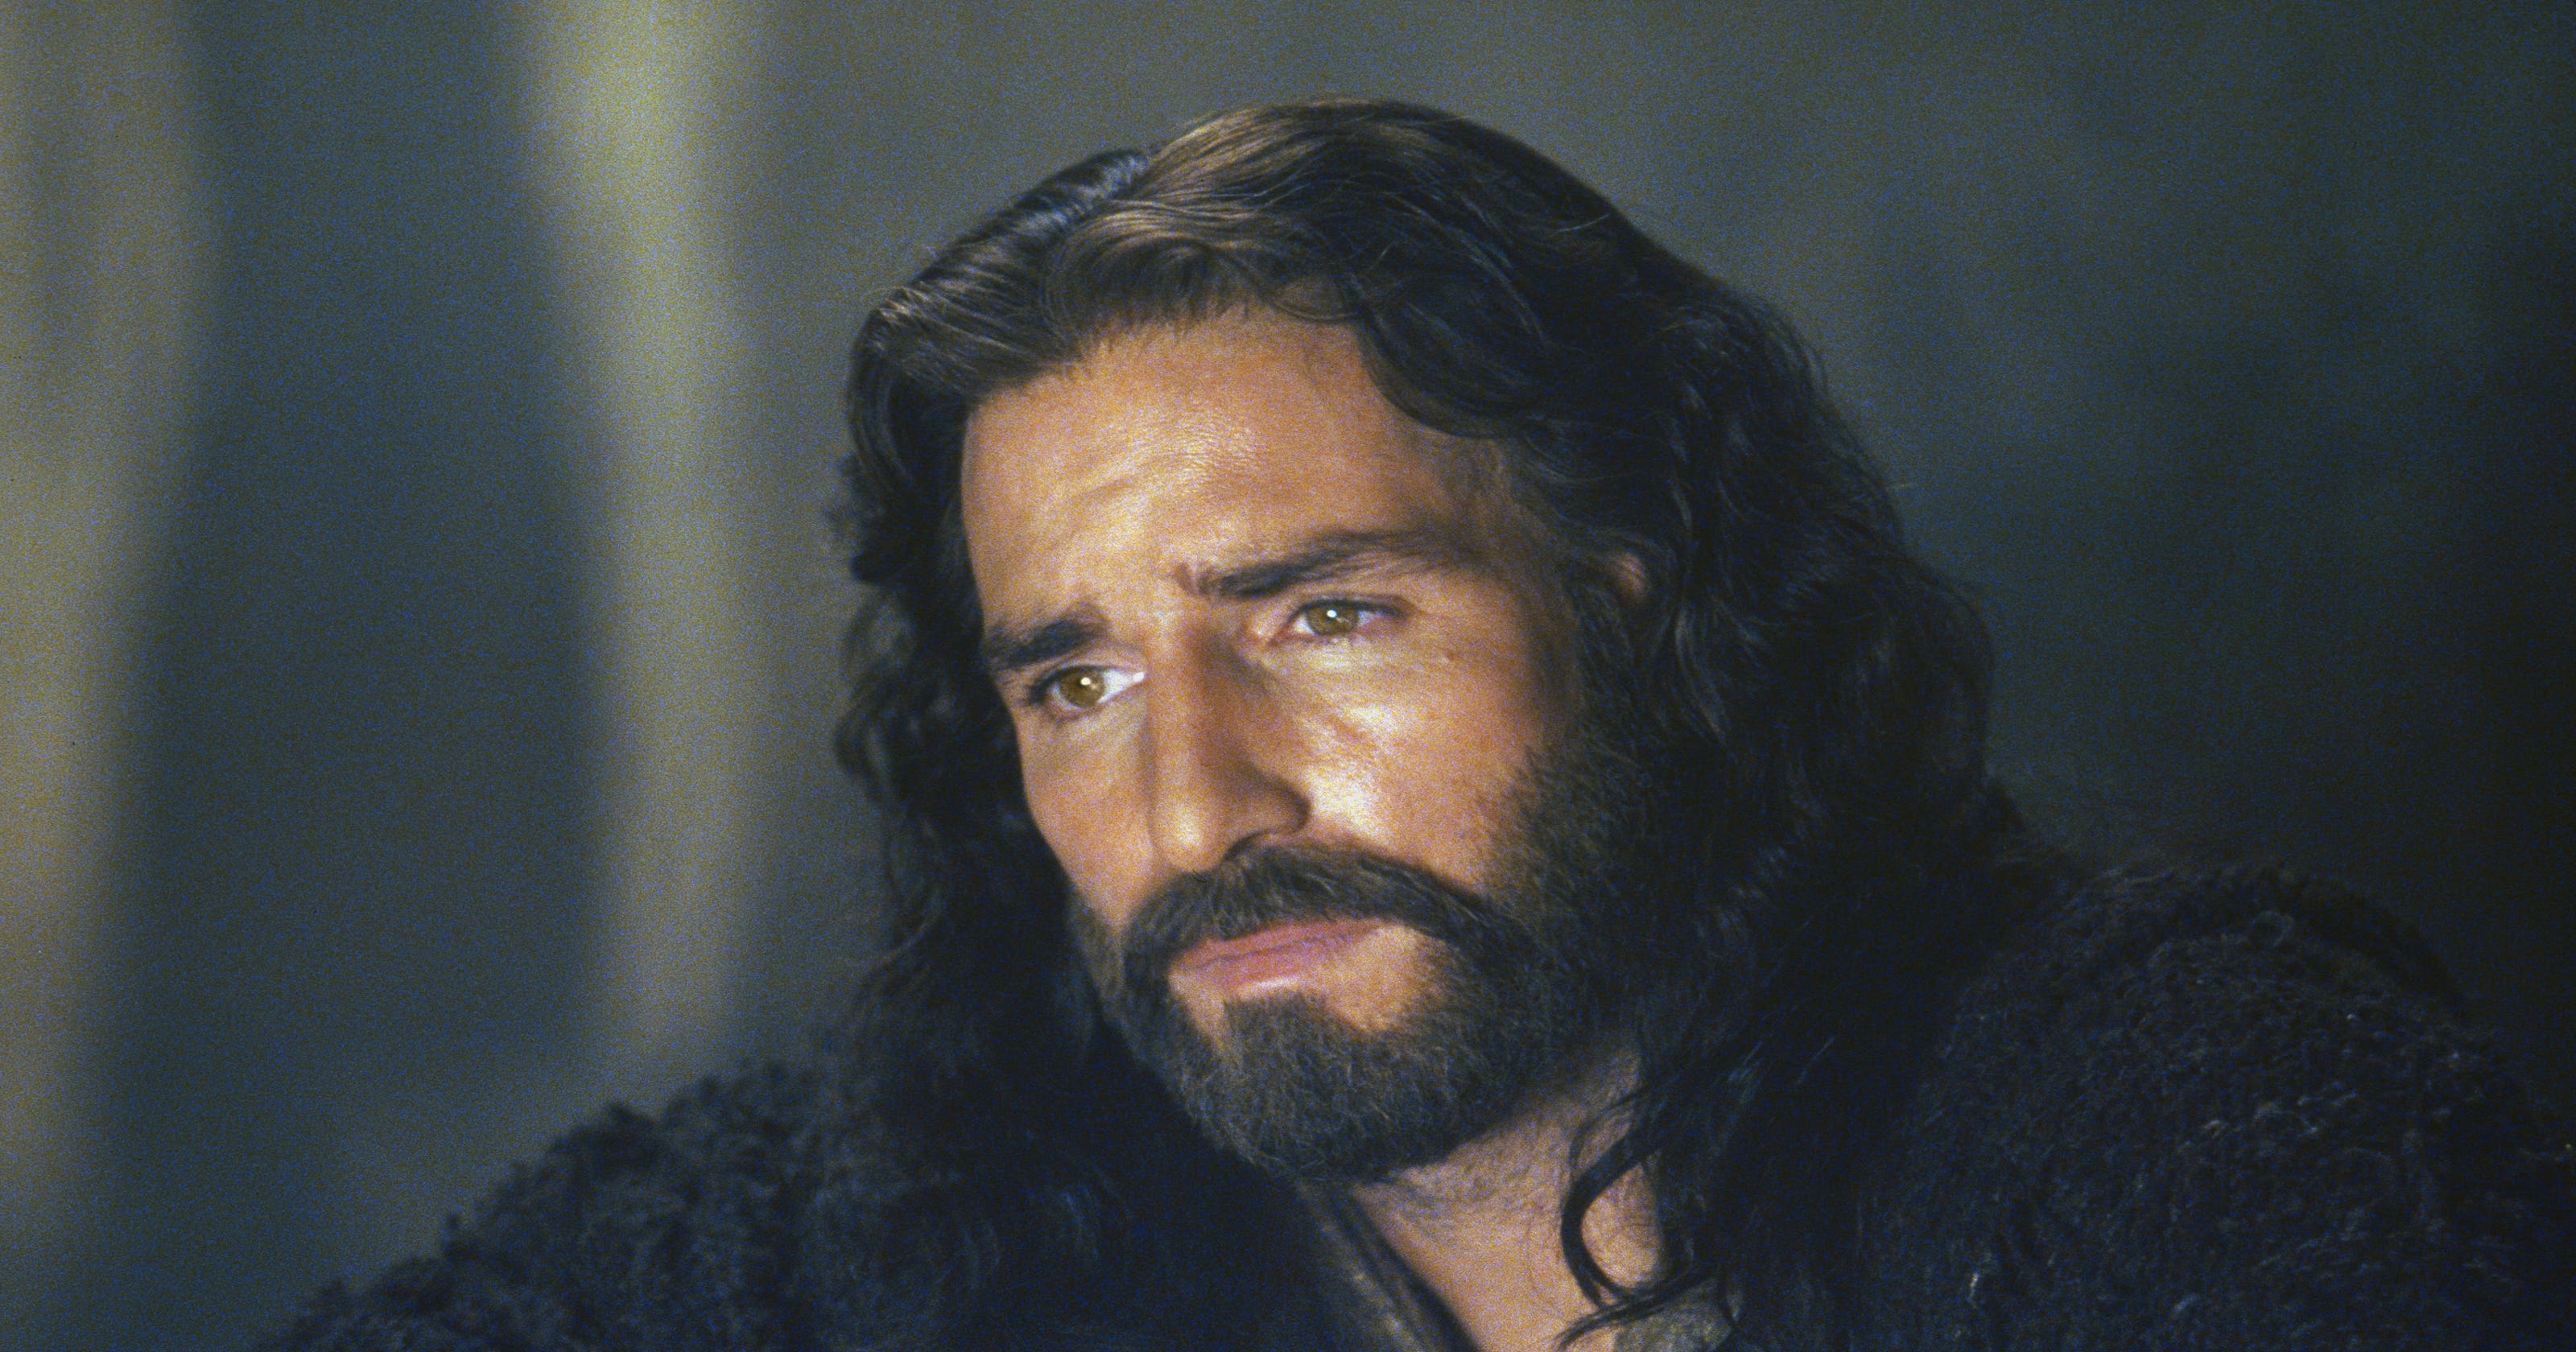 Jim Caviezel: 'Passion of the Christ' sequel will be biggest film ever